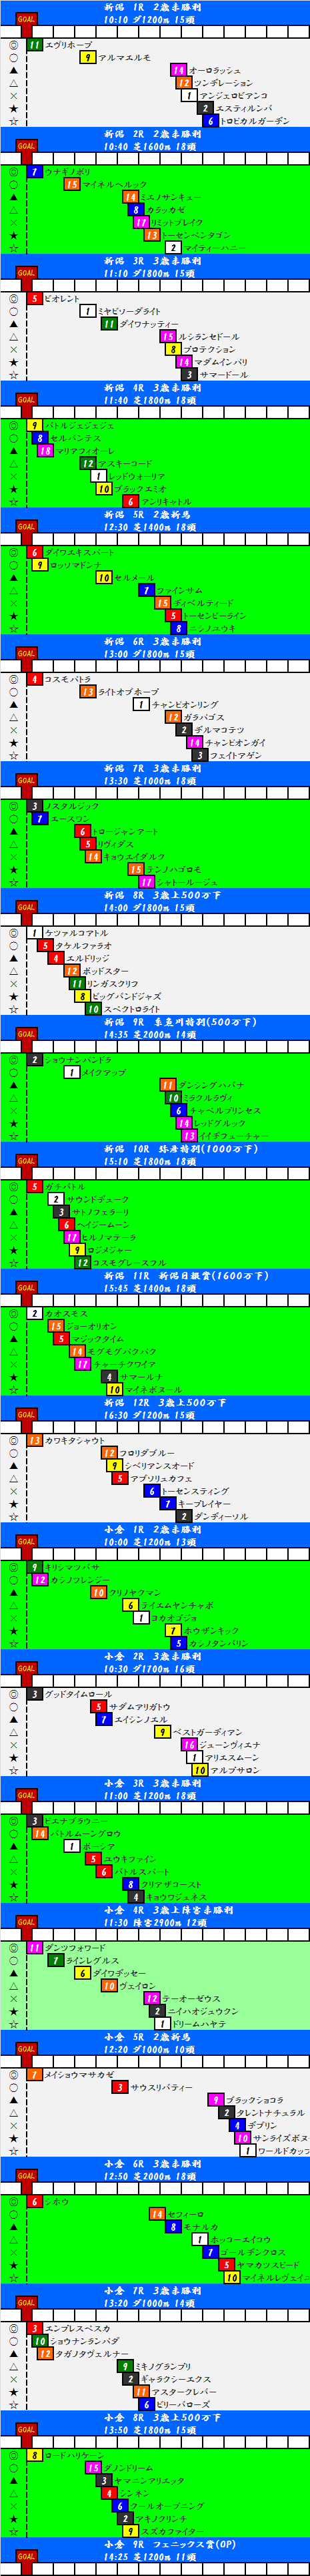 201408161.png